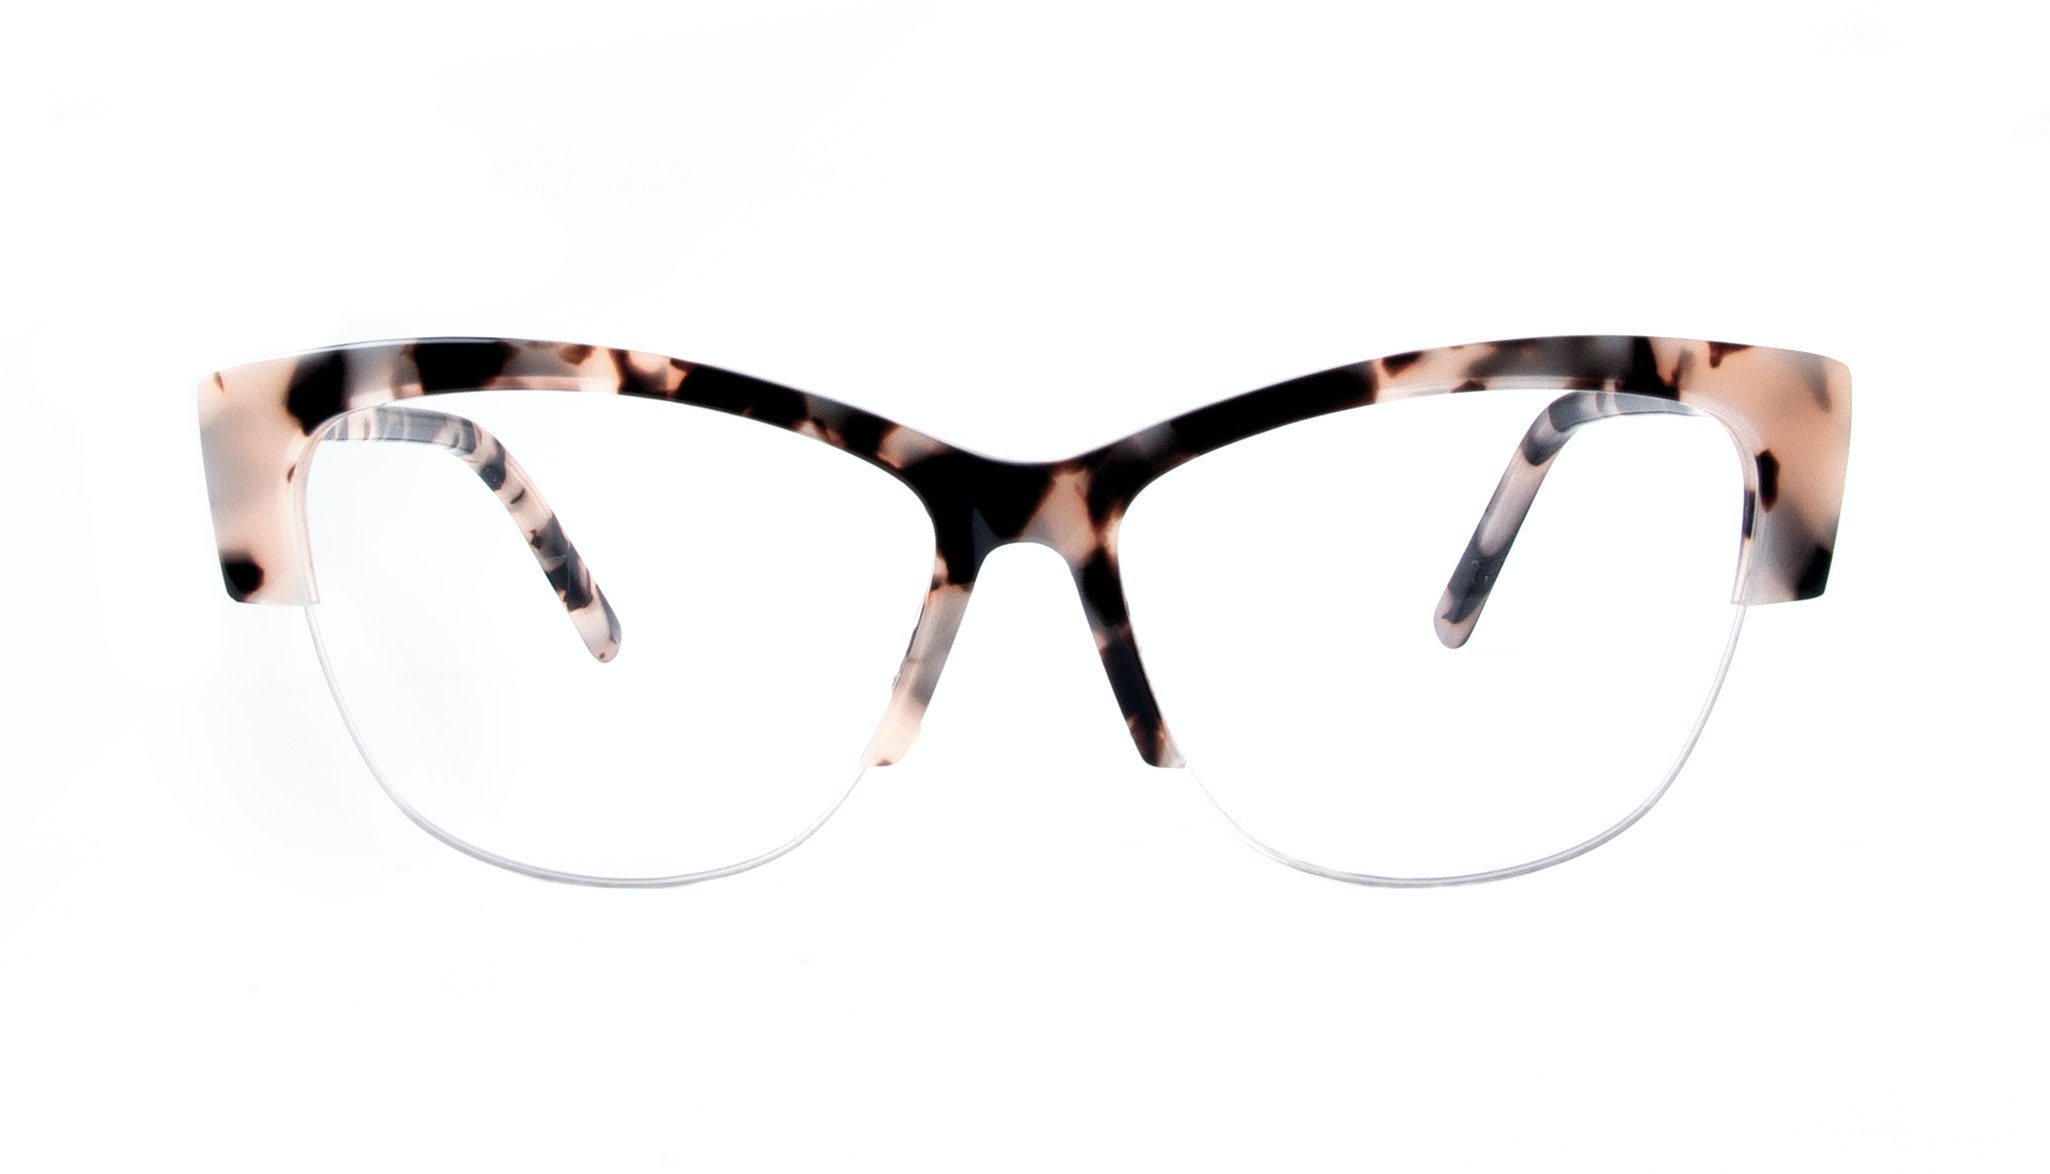 Affordable Fashion Glasses Cat Eye Semi-Rimless Eyeglasses Women Dolled Up Light Granite Front